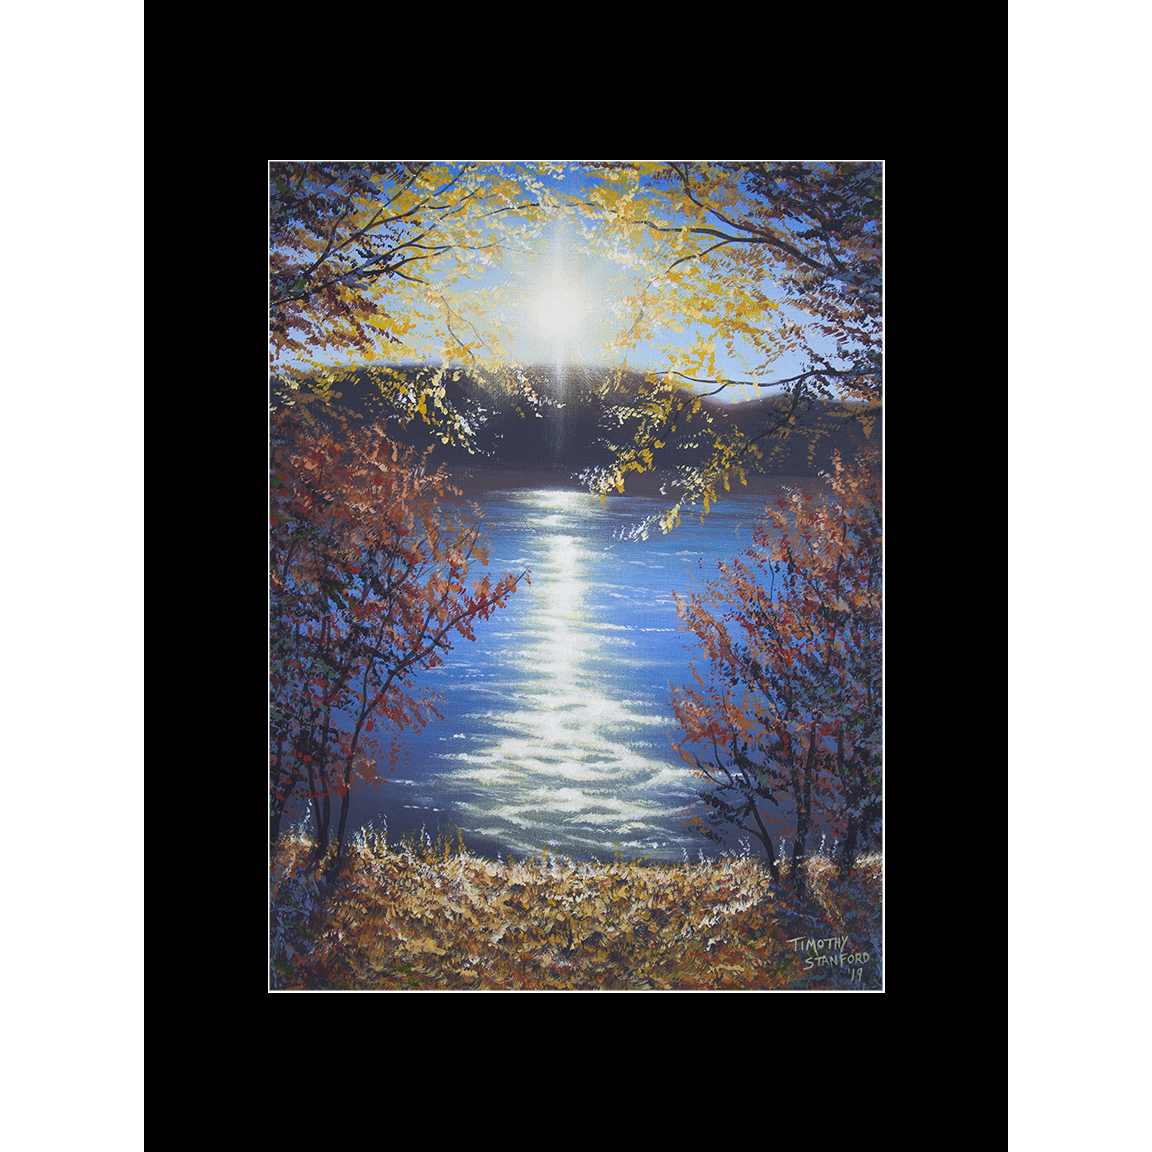 """Fine art matted print of Timothy Stanford's original acrylic painting """"Shimmering Sunset"""""""